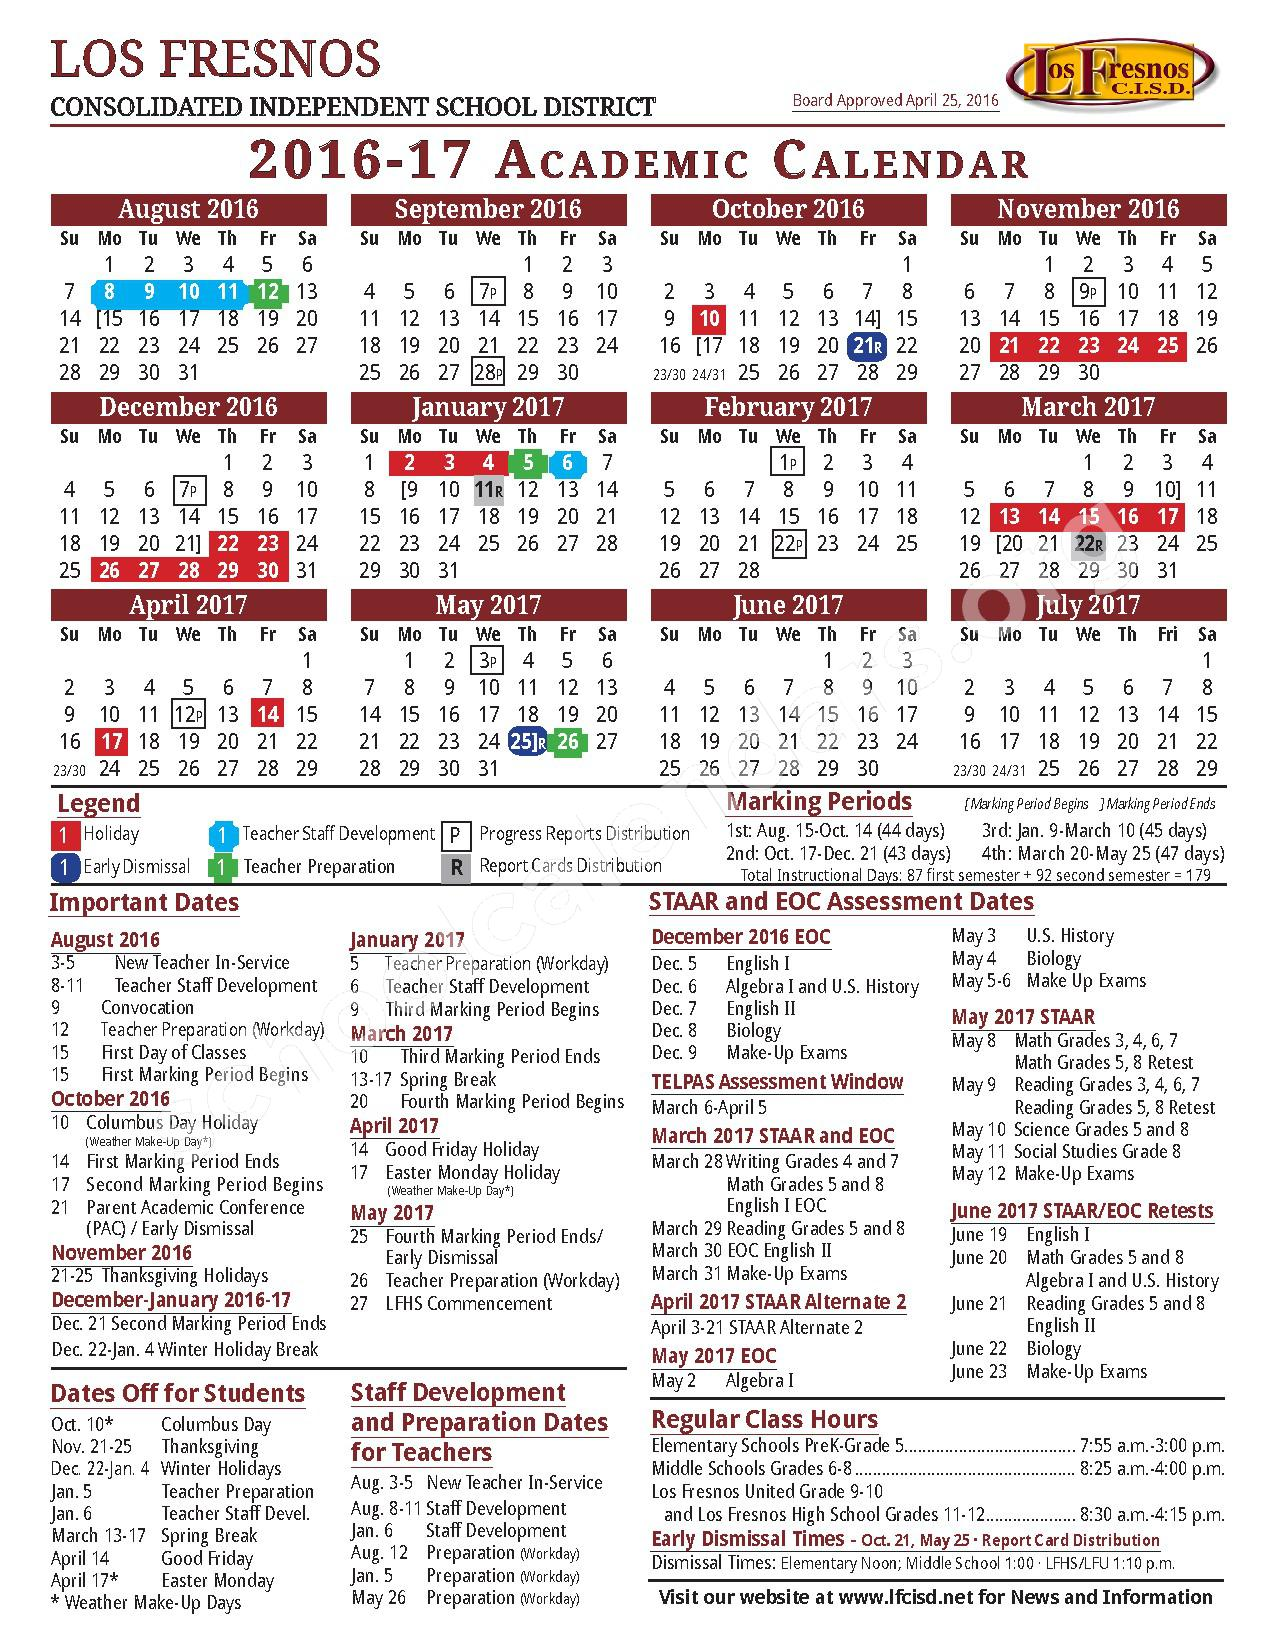 2016 - 2017 Academic Calendar – Los Fresnos Consolidated Independent School District – page 1